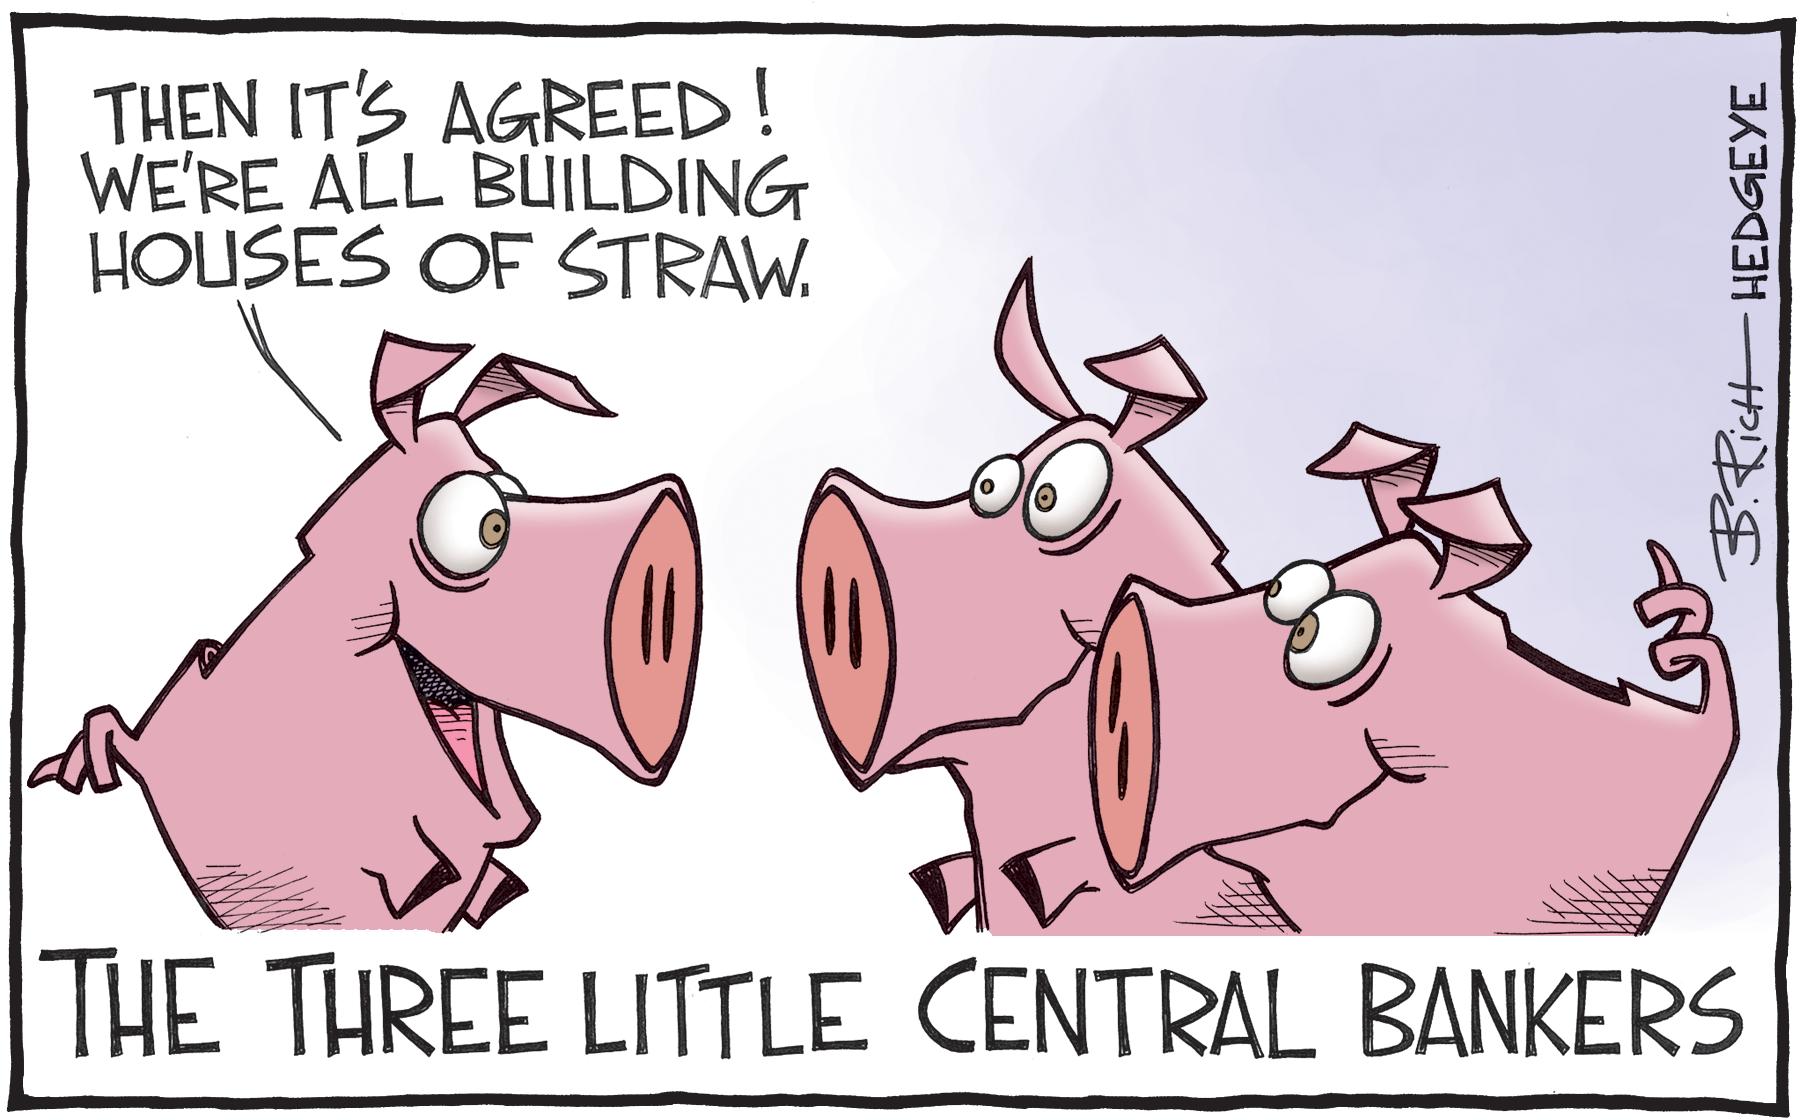 Bridgewater Calculates How Much Time Central Banks Have